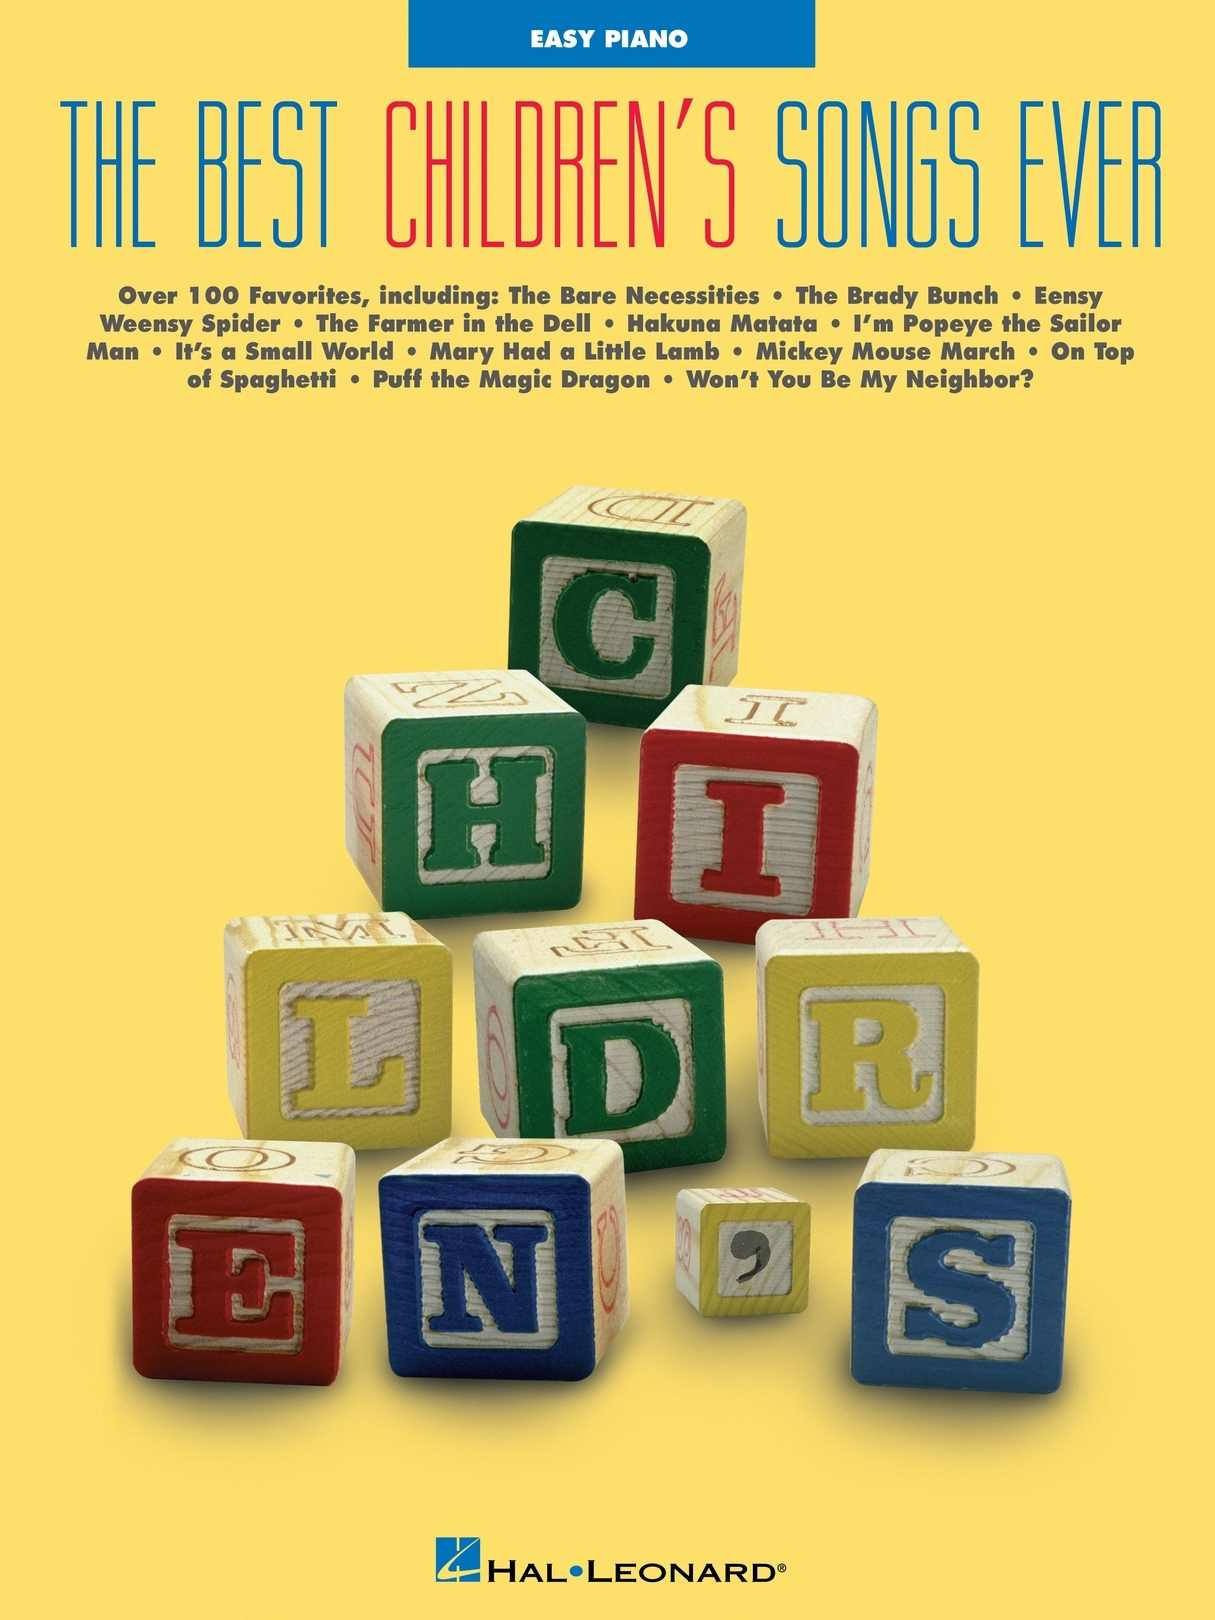 Best-Childrens-Songs-Ever-Easy-Piano-Songbook-cover.jpg